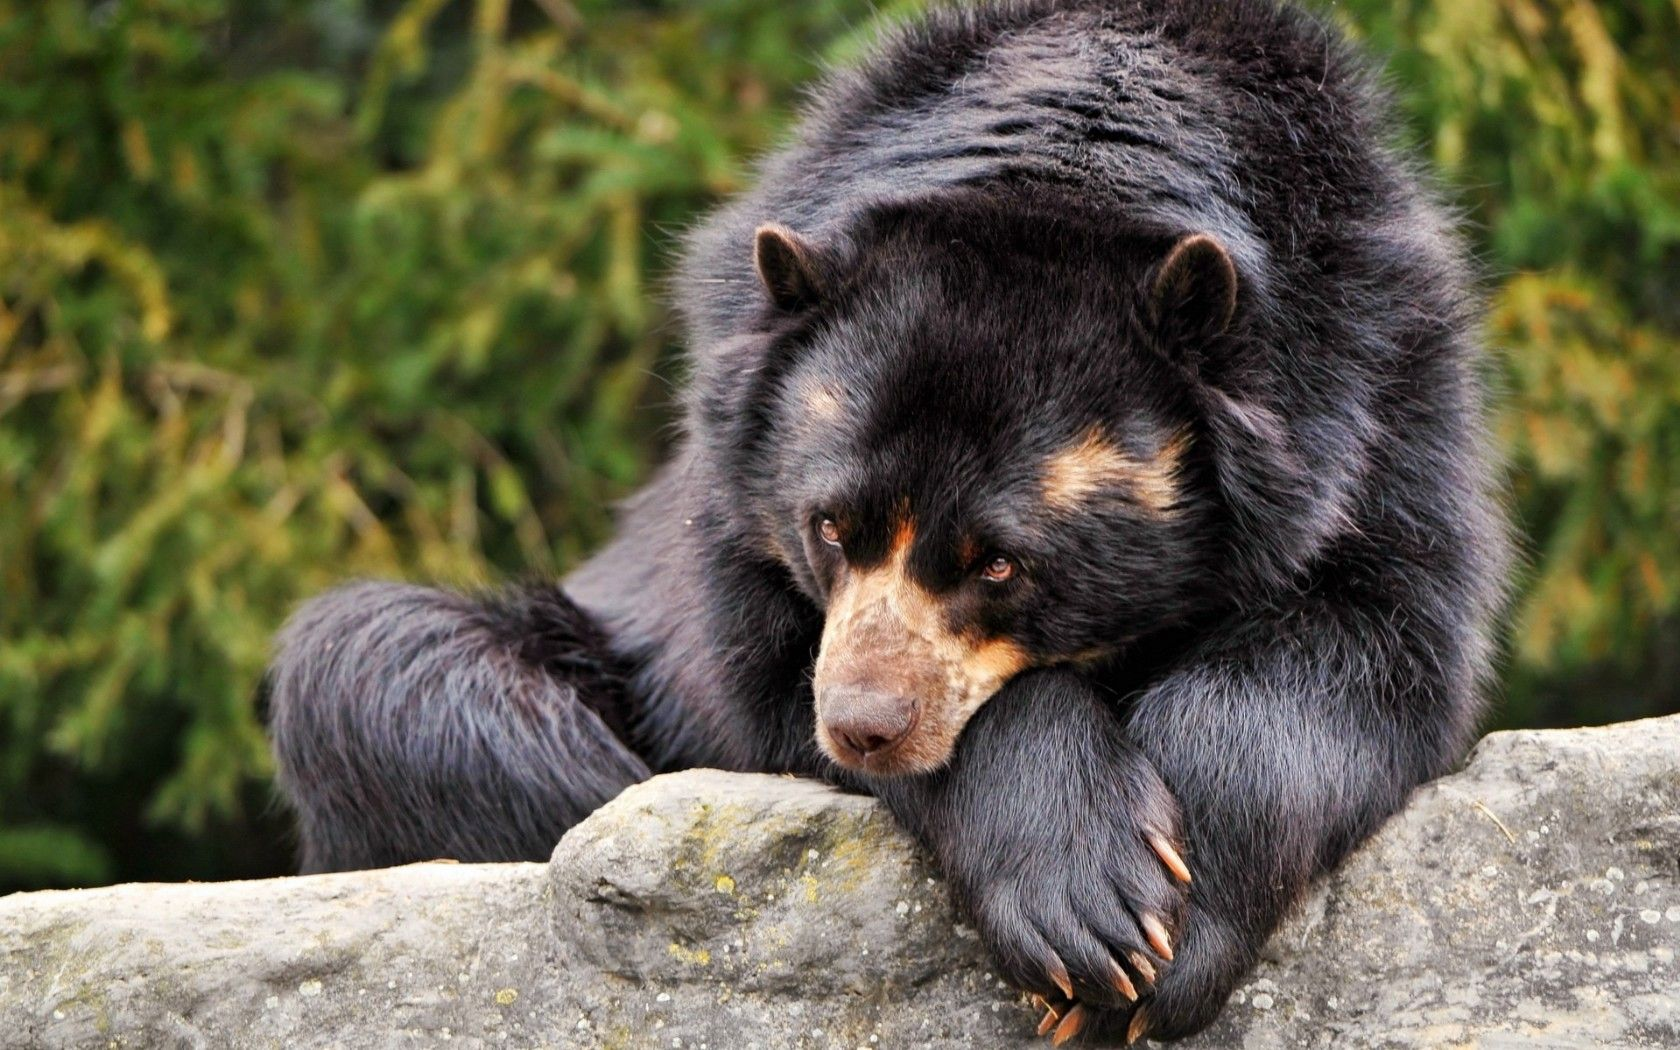 Pin by M. B. on Cuddly Creatures Black bear, Animals